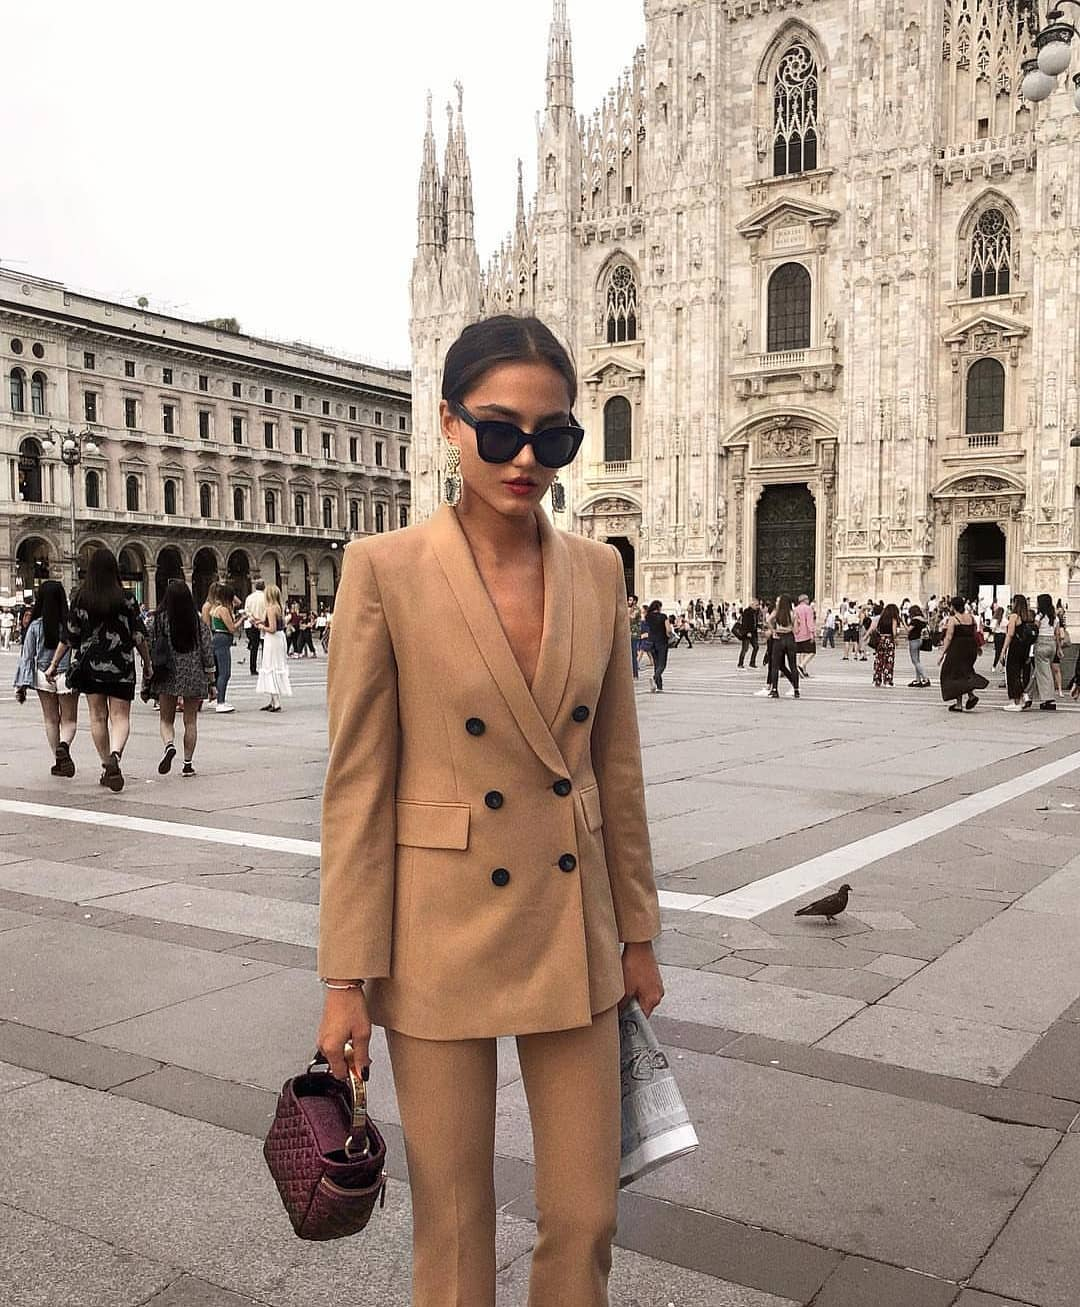 Double Breasted Camel Pantsuit For Fall In Milan 2020